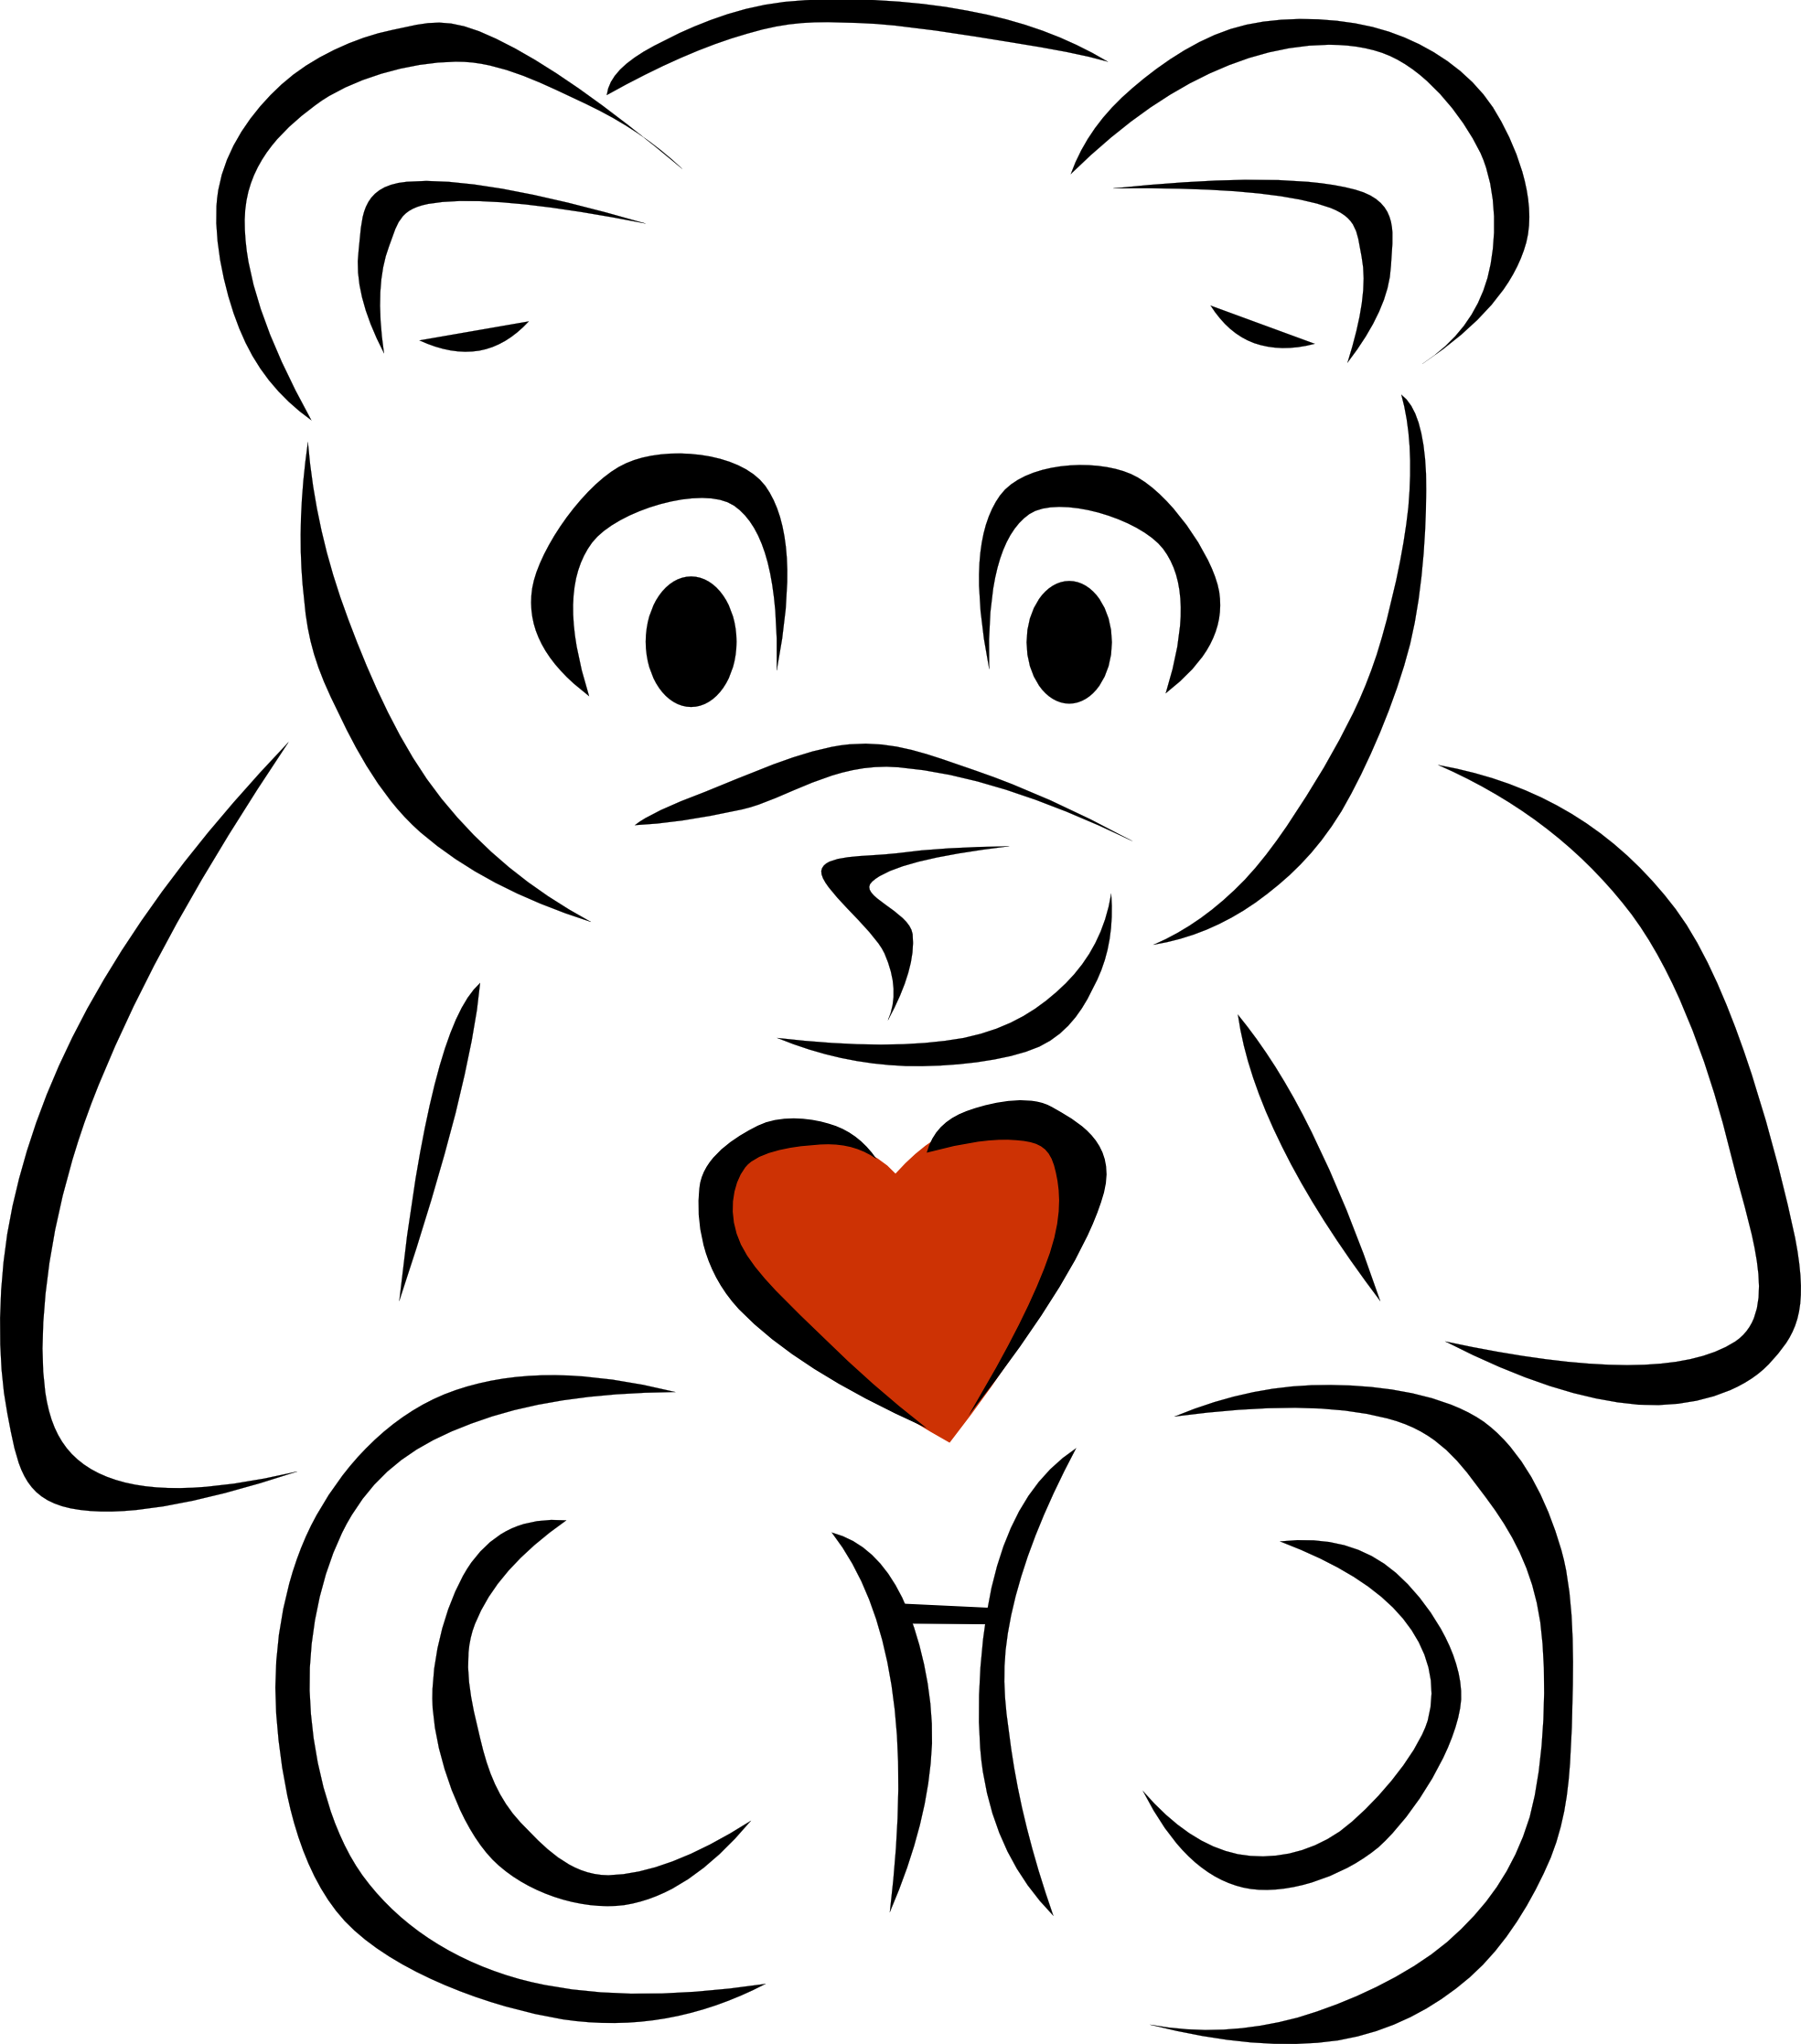 group%20of%20hearts%20clipart%20black%20and%20white